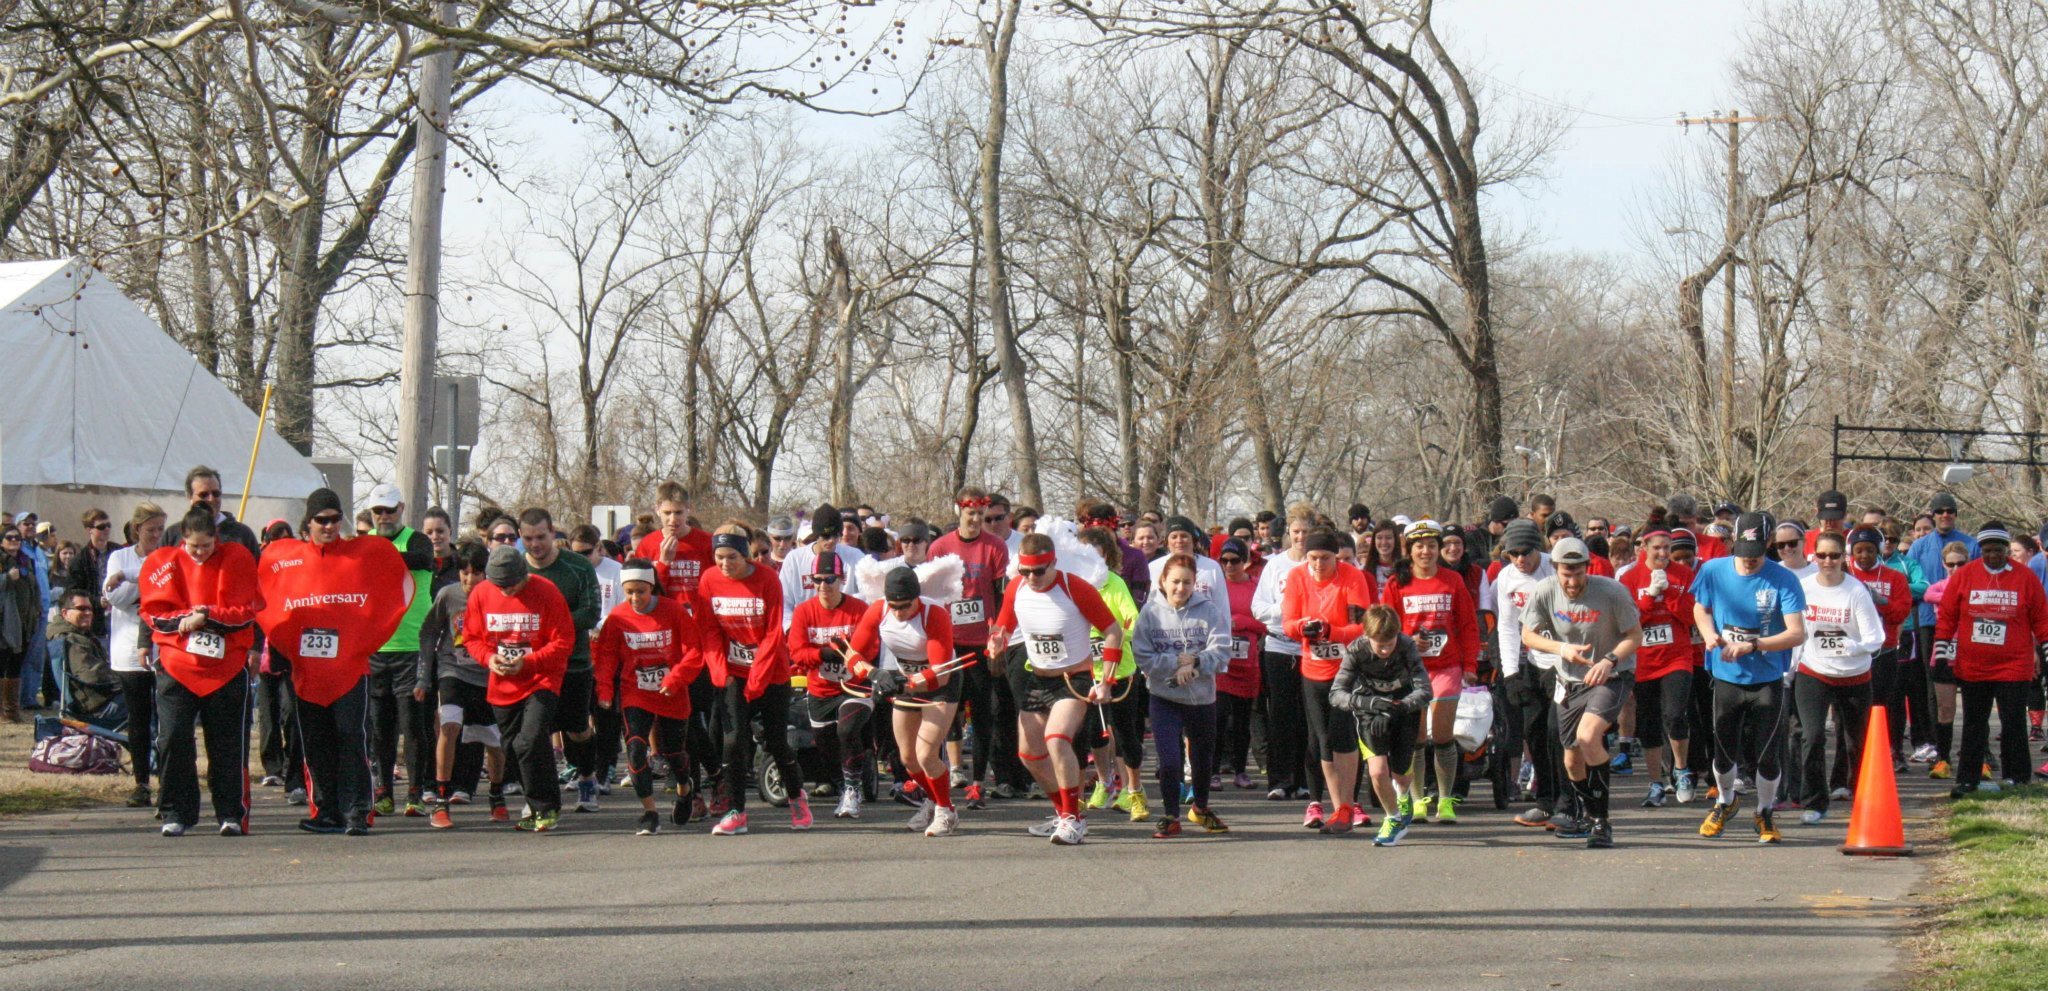 A group of runners starts a past Cupid's Chase 5K race. Participants in the race where different colored shirts denoting whether they are 'unavailable' or 'available.'